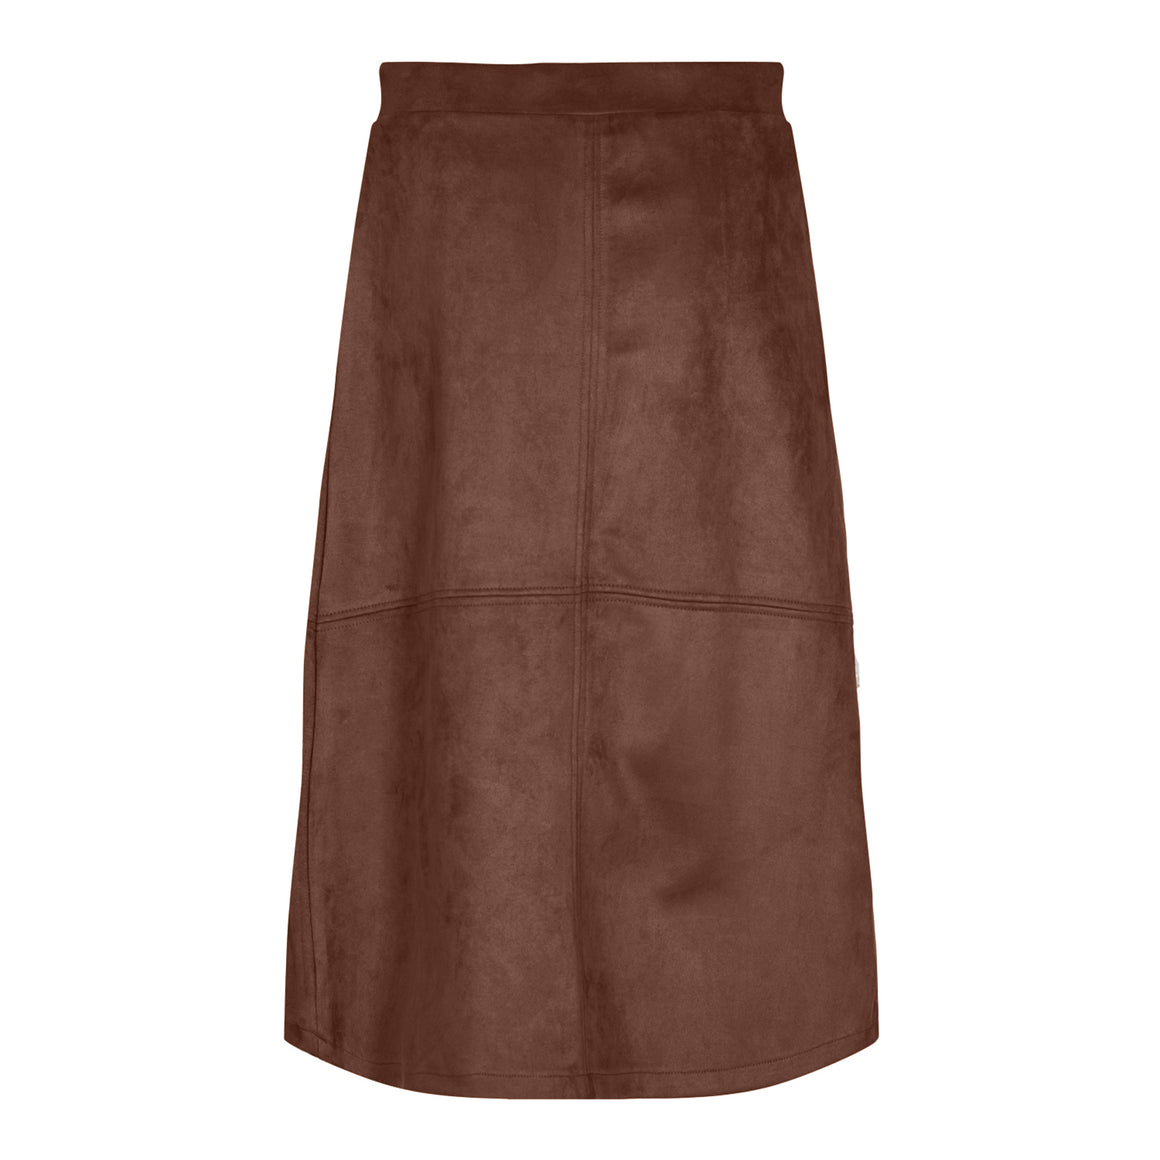 Suedette Skirt for Women in Chocolate